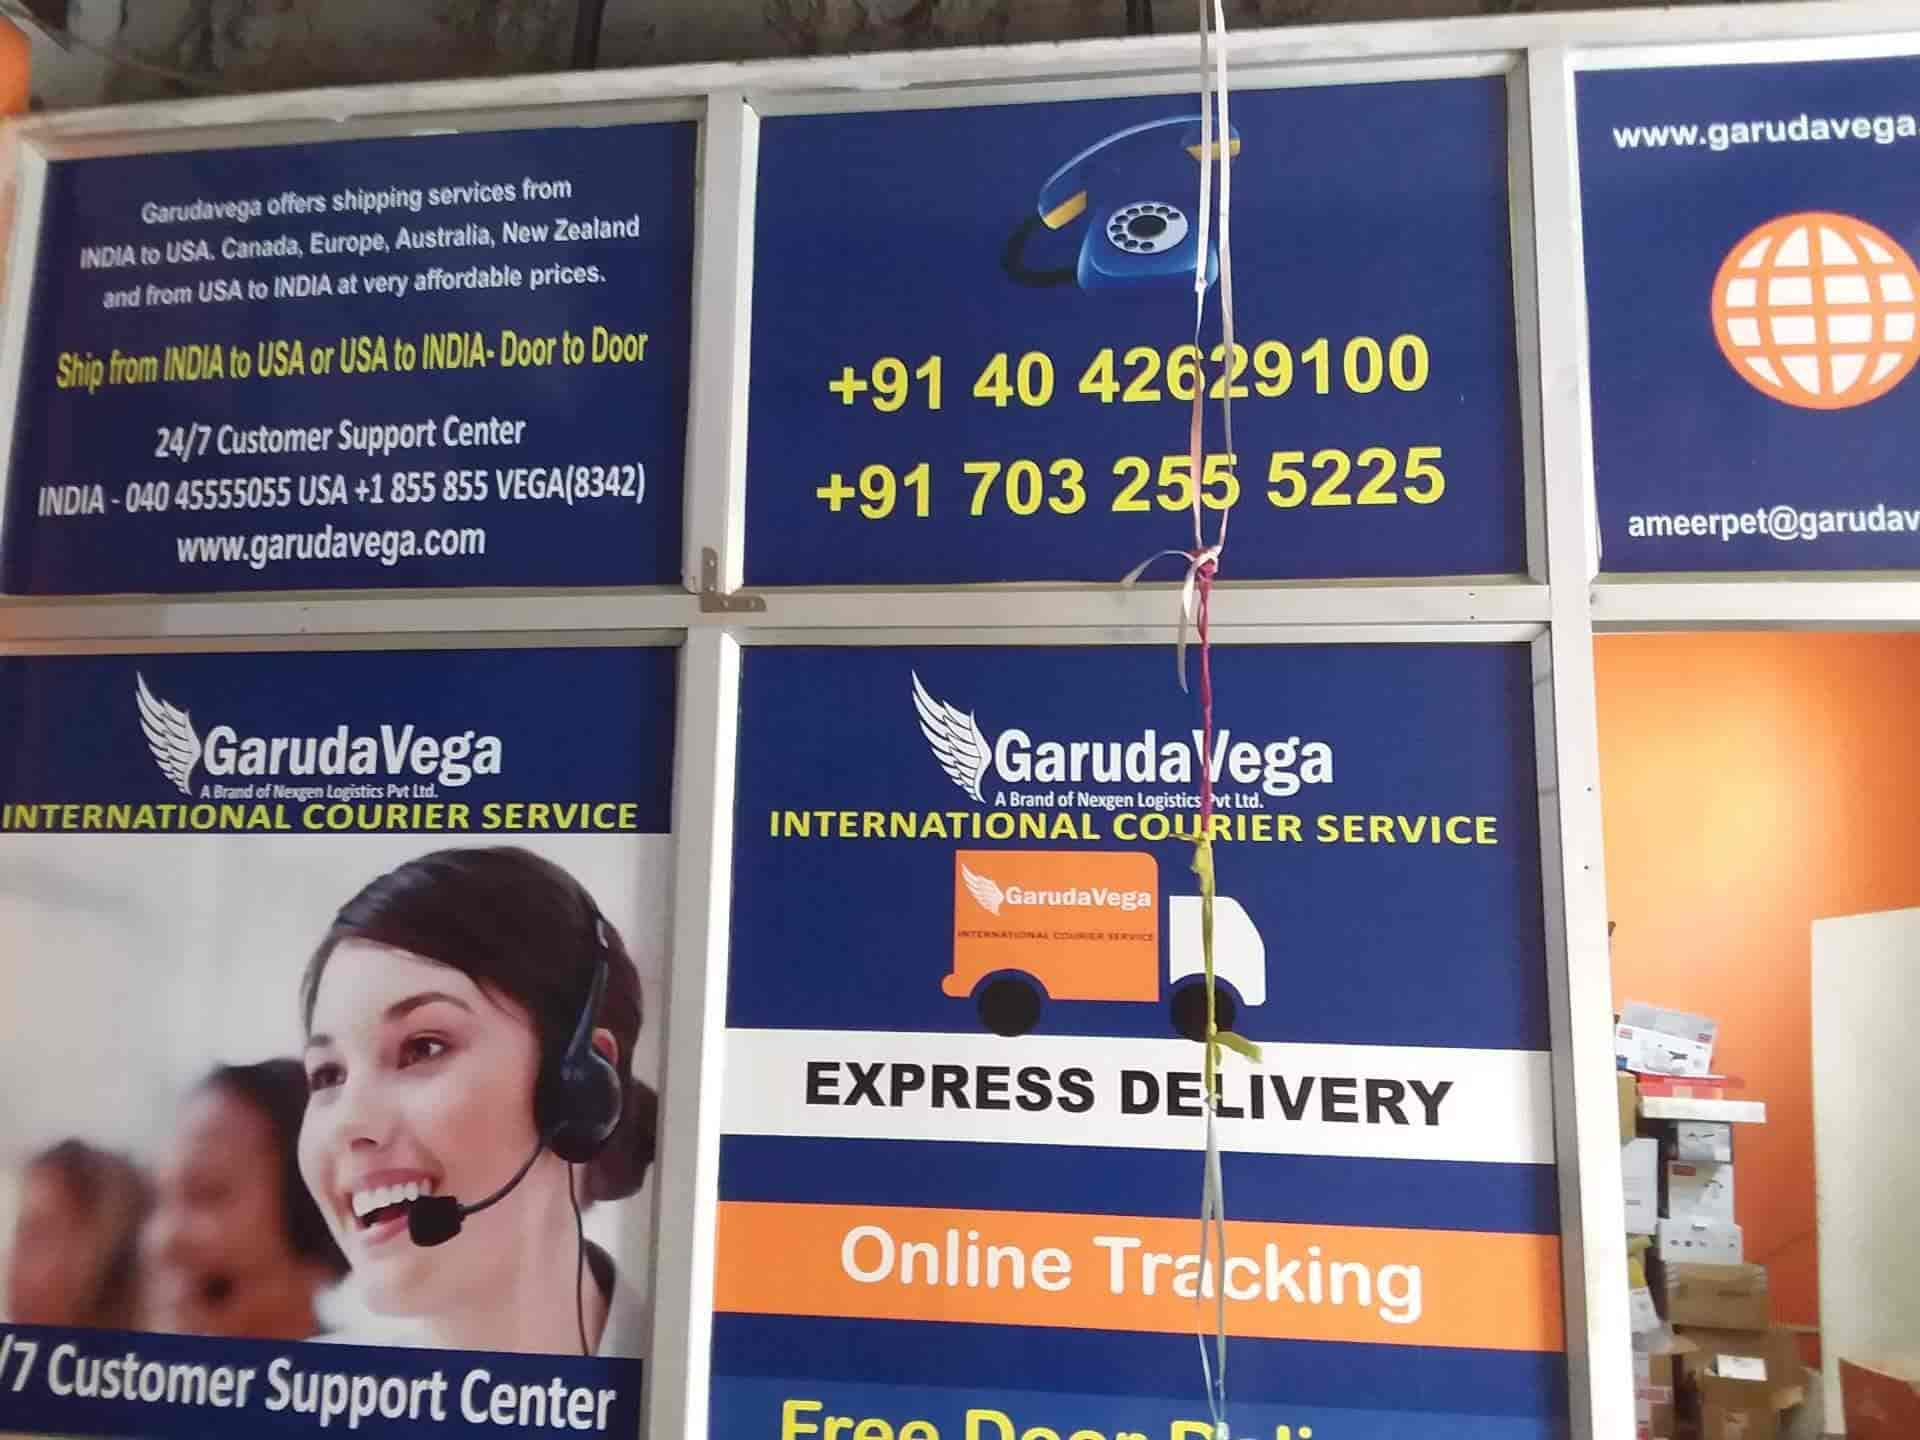 Garudavega Delivery Services Pvt Ltd, Ameerpet - Courier